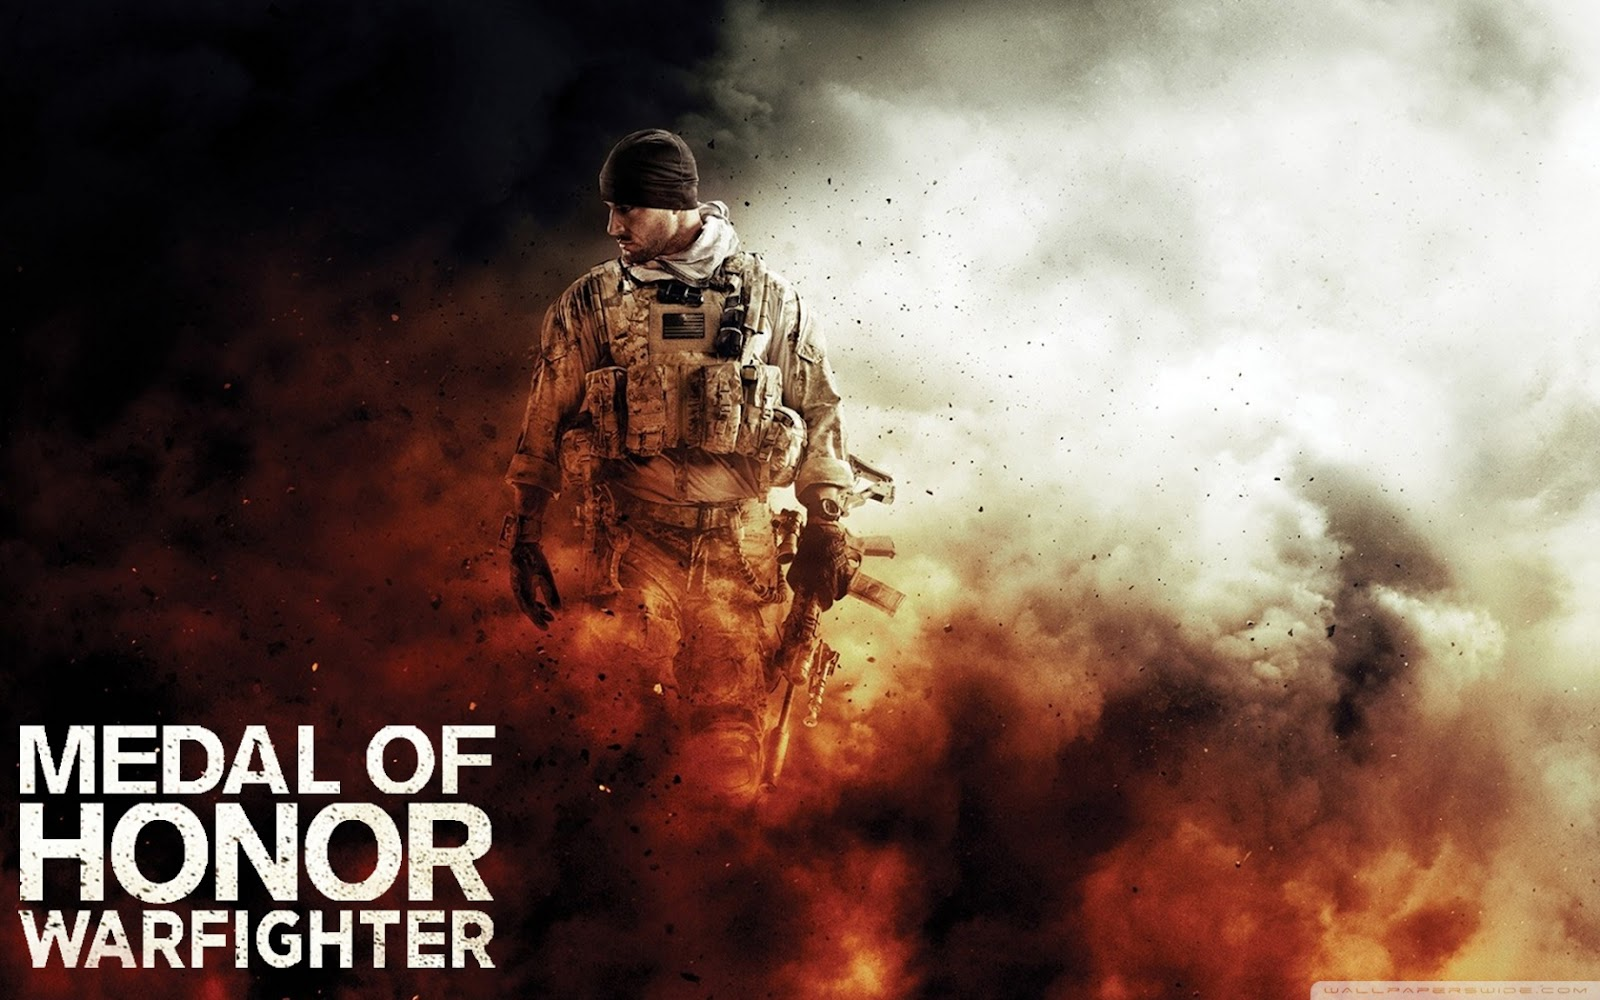 http://3.bp.blogspot.com/-RFrbf1jPbB8/UWGumJx-udI/AAAAAAAAP0s/pKXFEvCz0s8/s1600/Medal+of+Honor+-+Warfighter+Wallpapers+%252810%2529.jpg